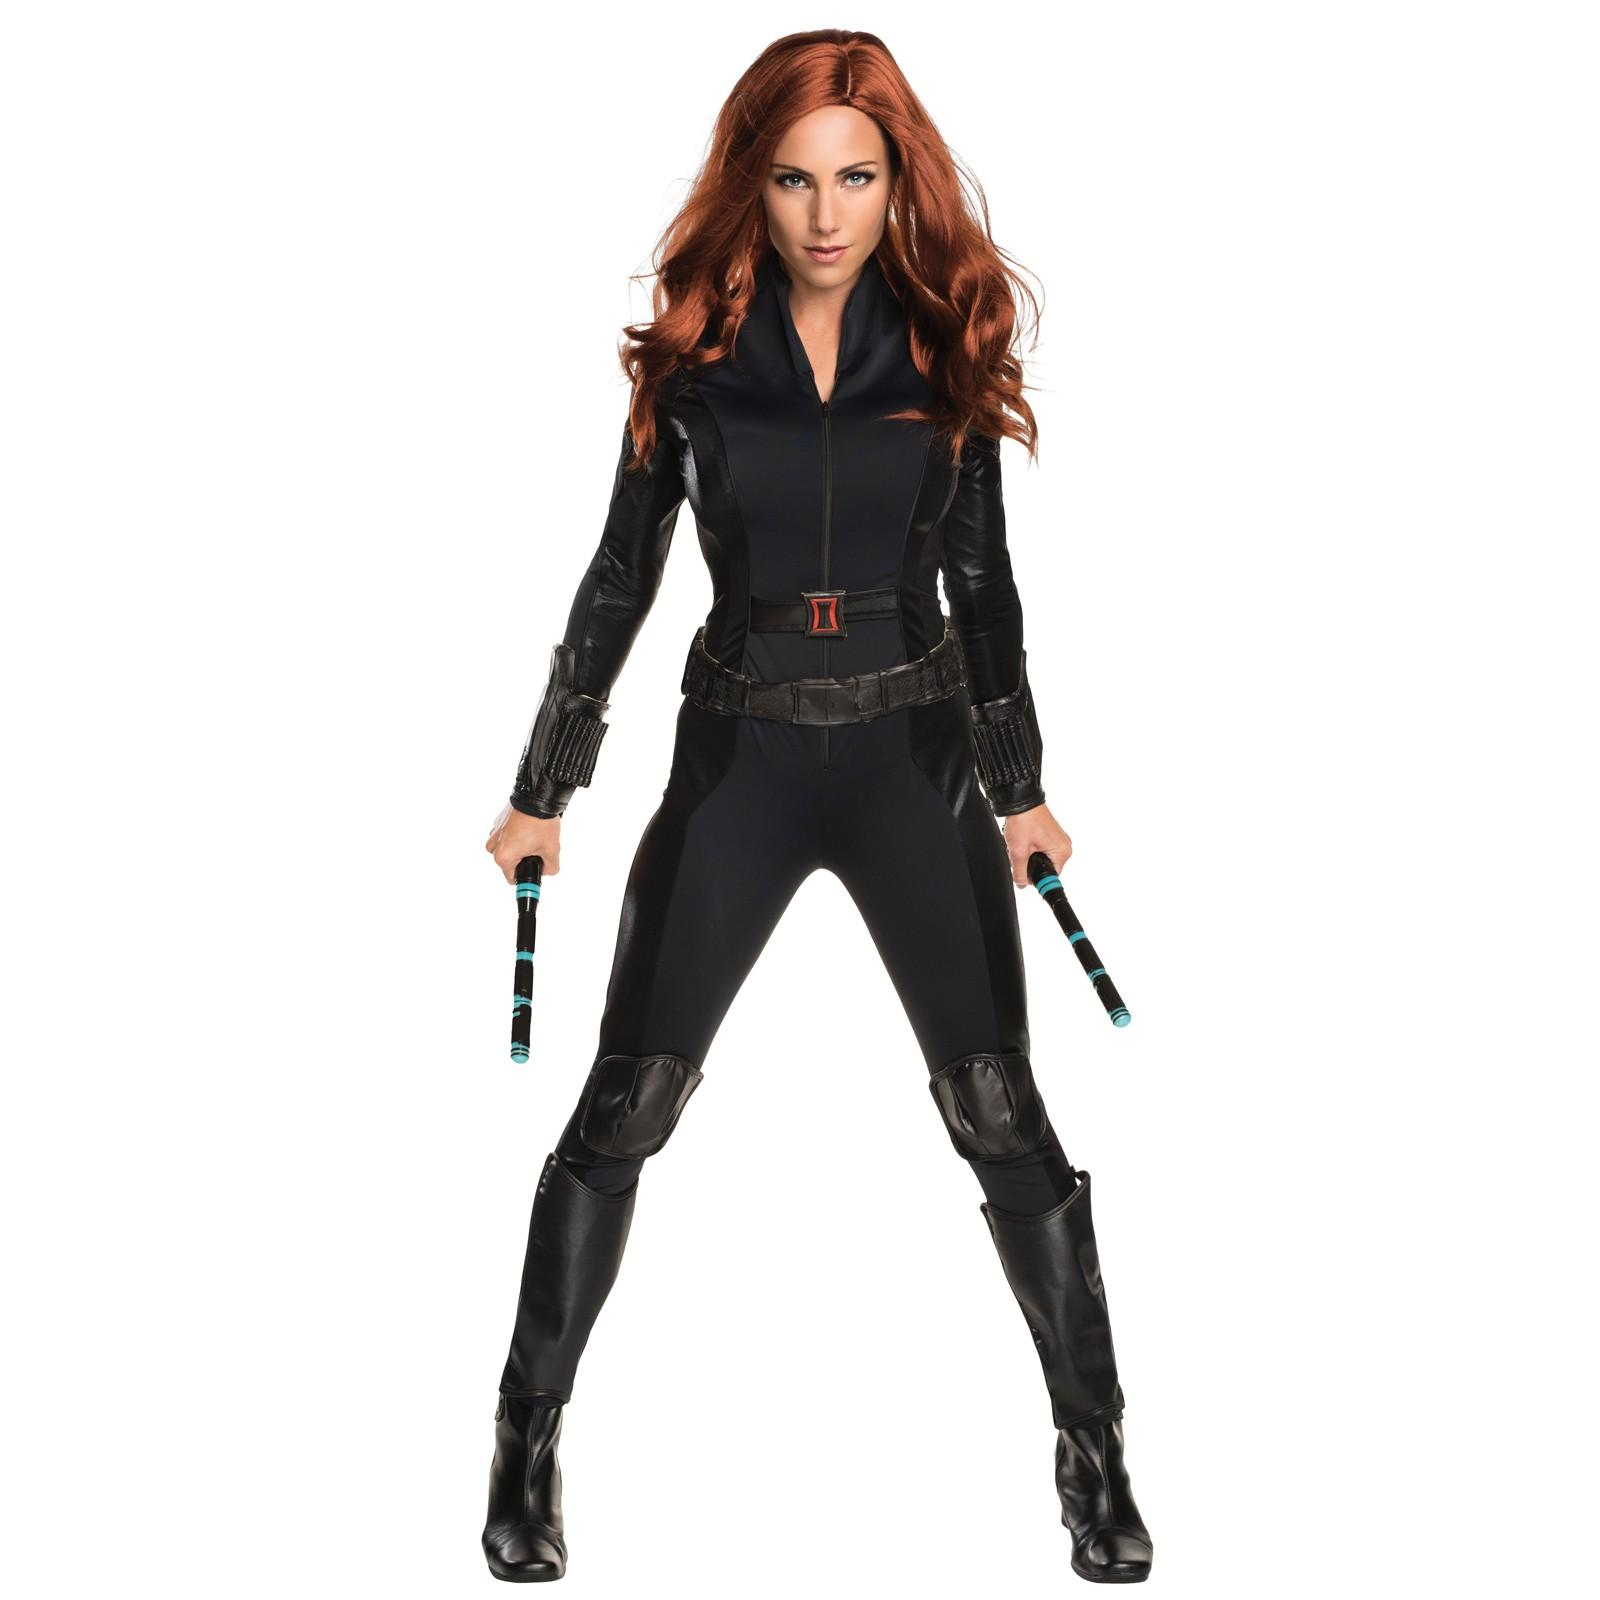 Marvel S Captain America Civil War Black Widow Secret Wishes Adult Costume Xs Walmart Com Walmart Com A wide variety of captain marvel costume options are available to you, such as supply type, costumes type, and holiday. marvel s captain america civil war black widow secret wishes adult costume xs walmart com